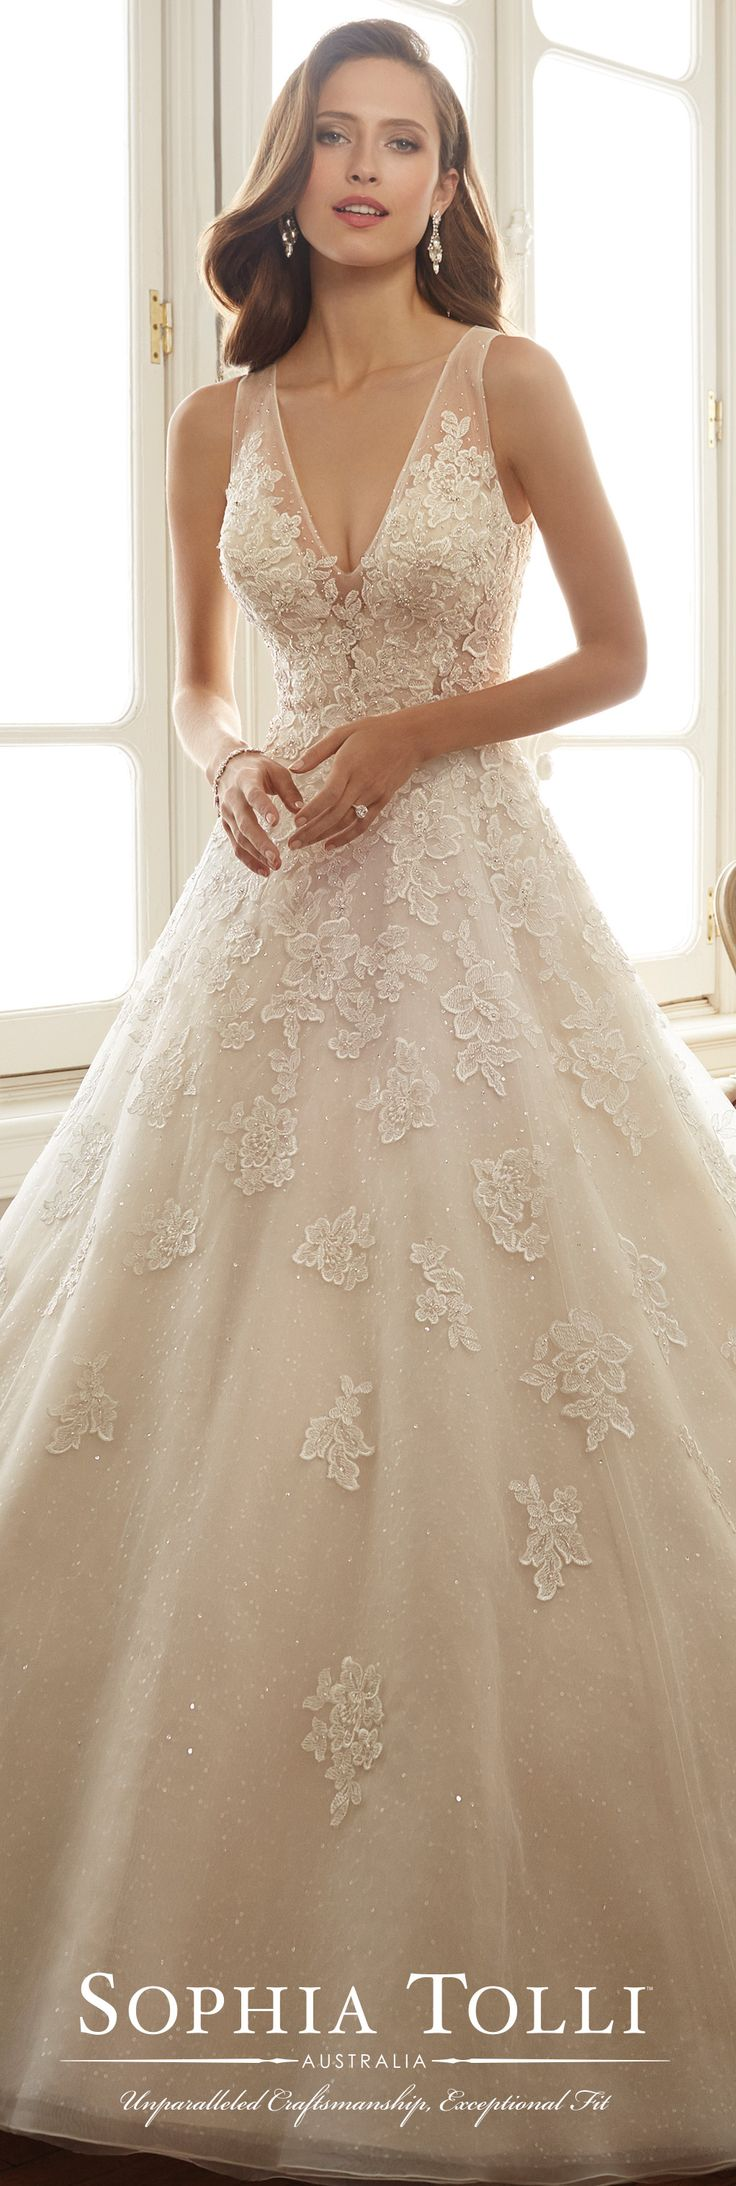 Trending Sophia Tolli Spring Wedding Gown Collection Style No Y Ciel sleeveless lace